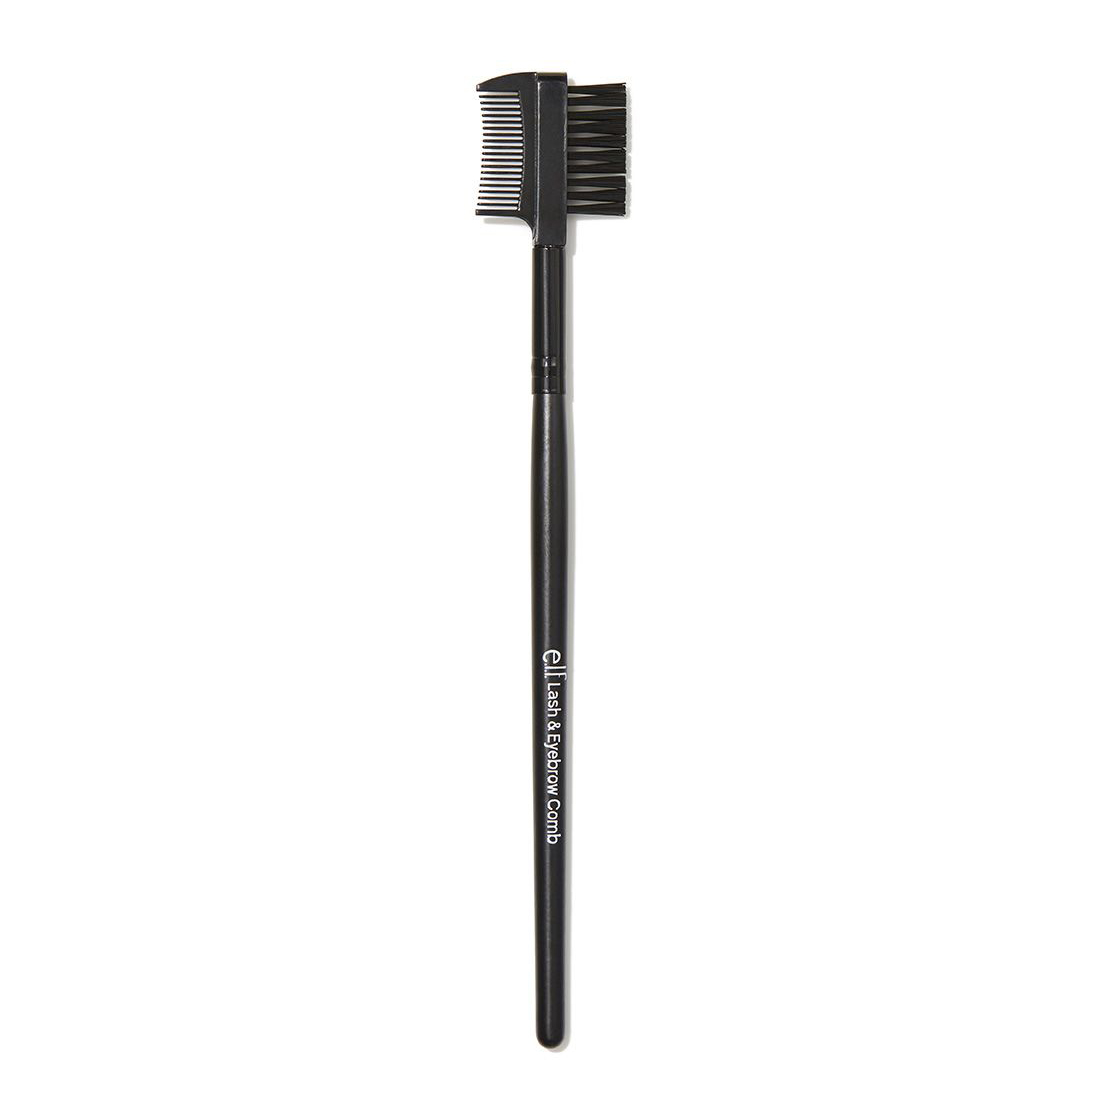 e.l.f. Cosmetics Lash and Brow Brush